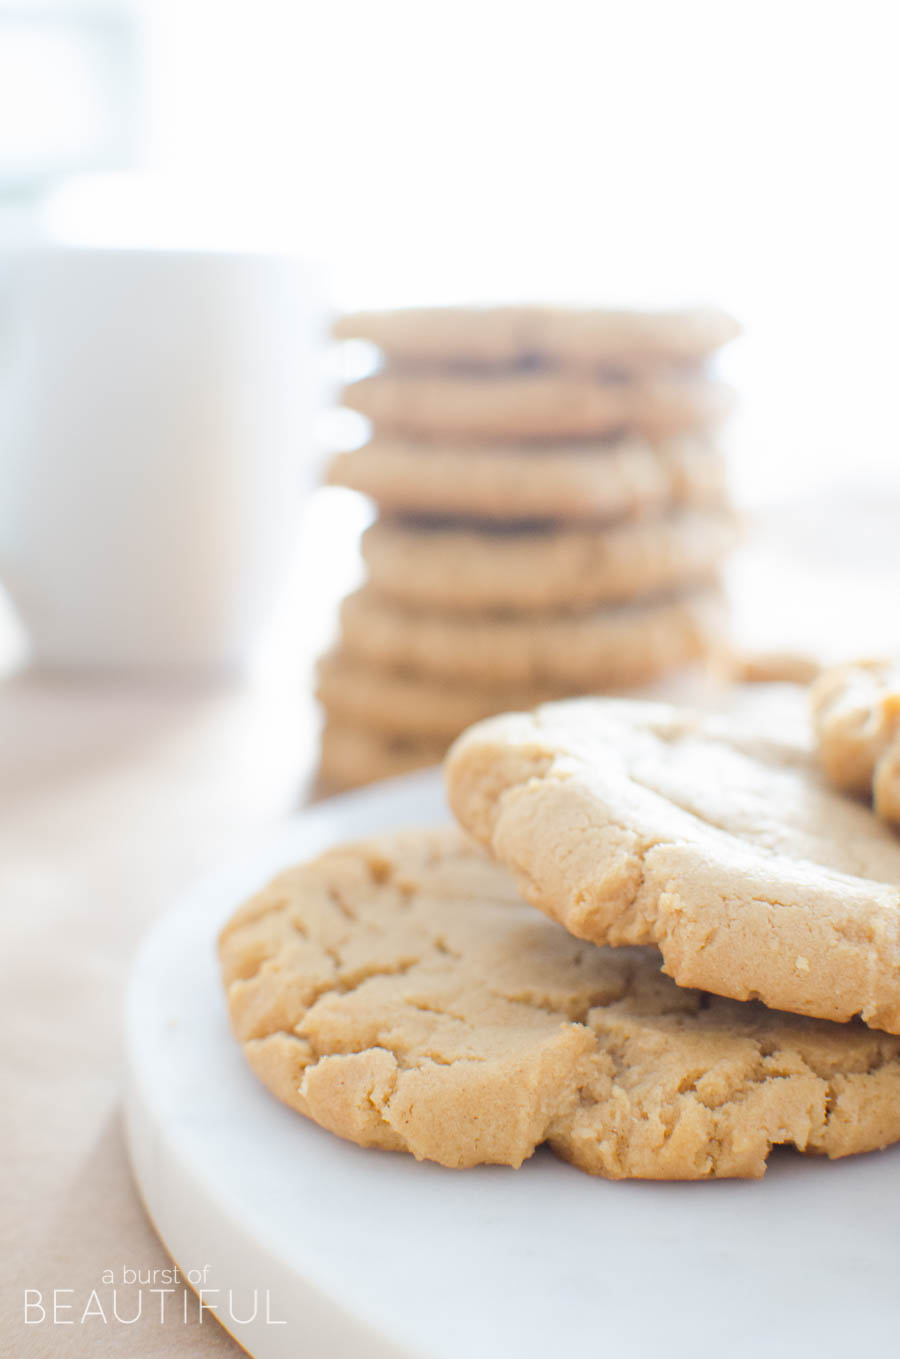 to come up with the ultimate peanut butter cookie recipe